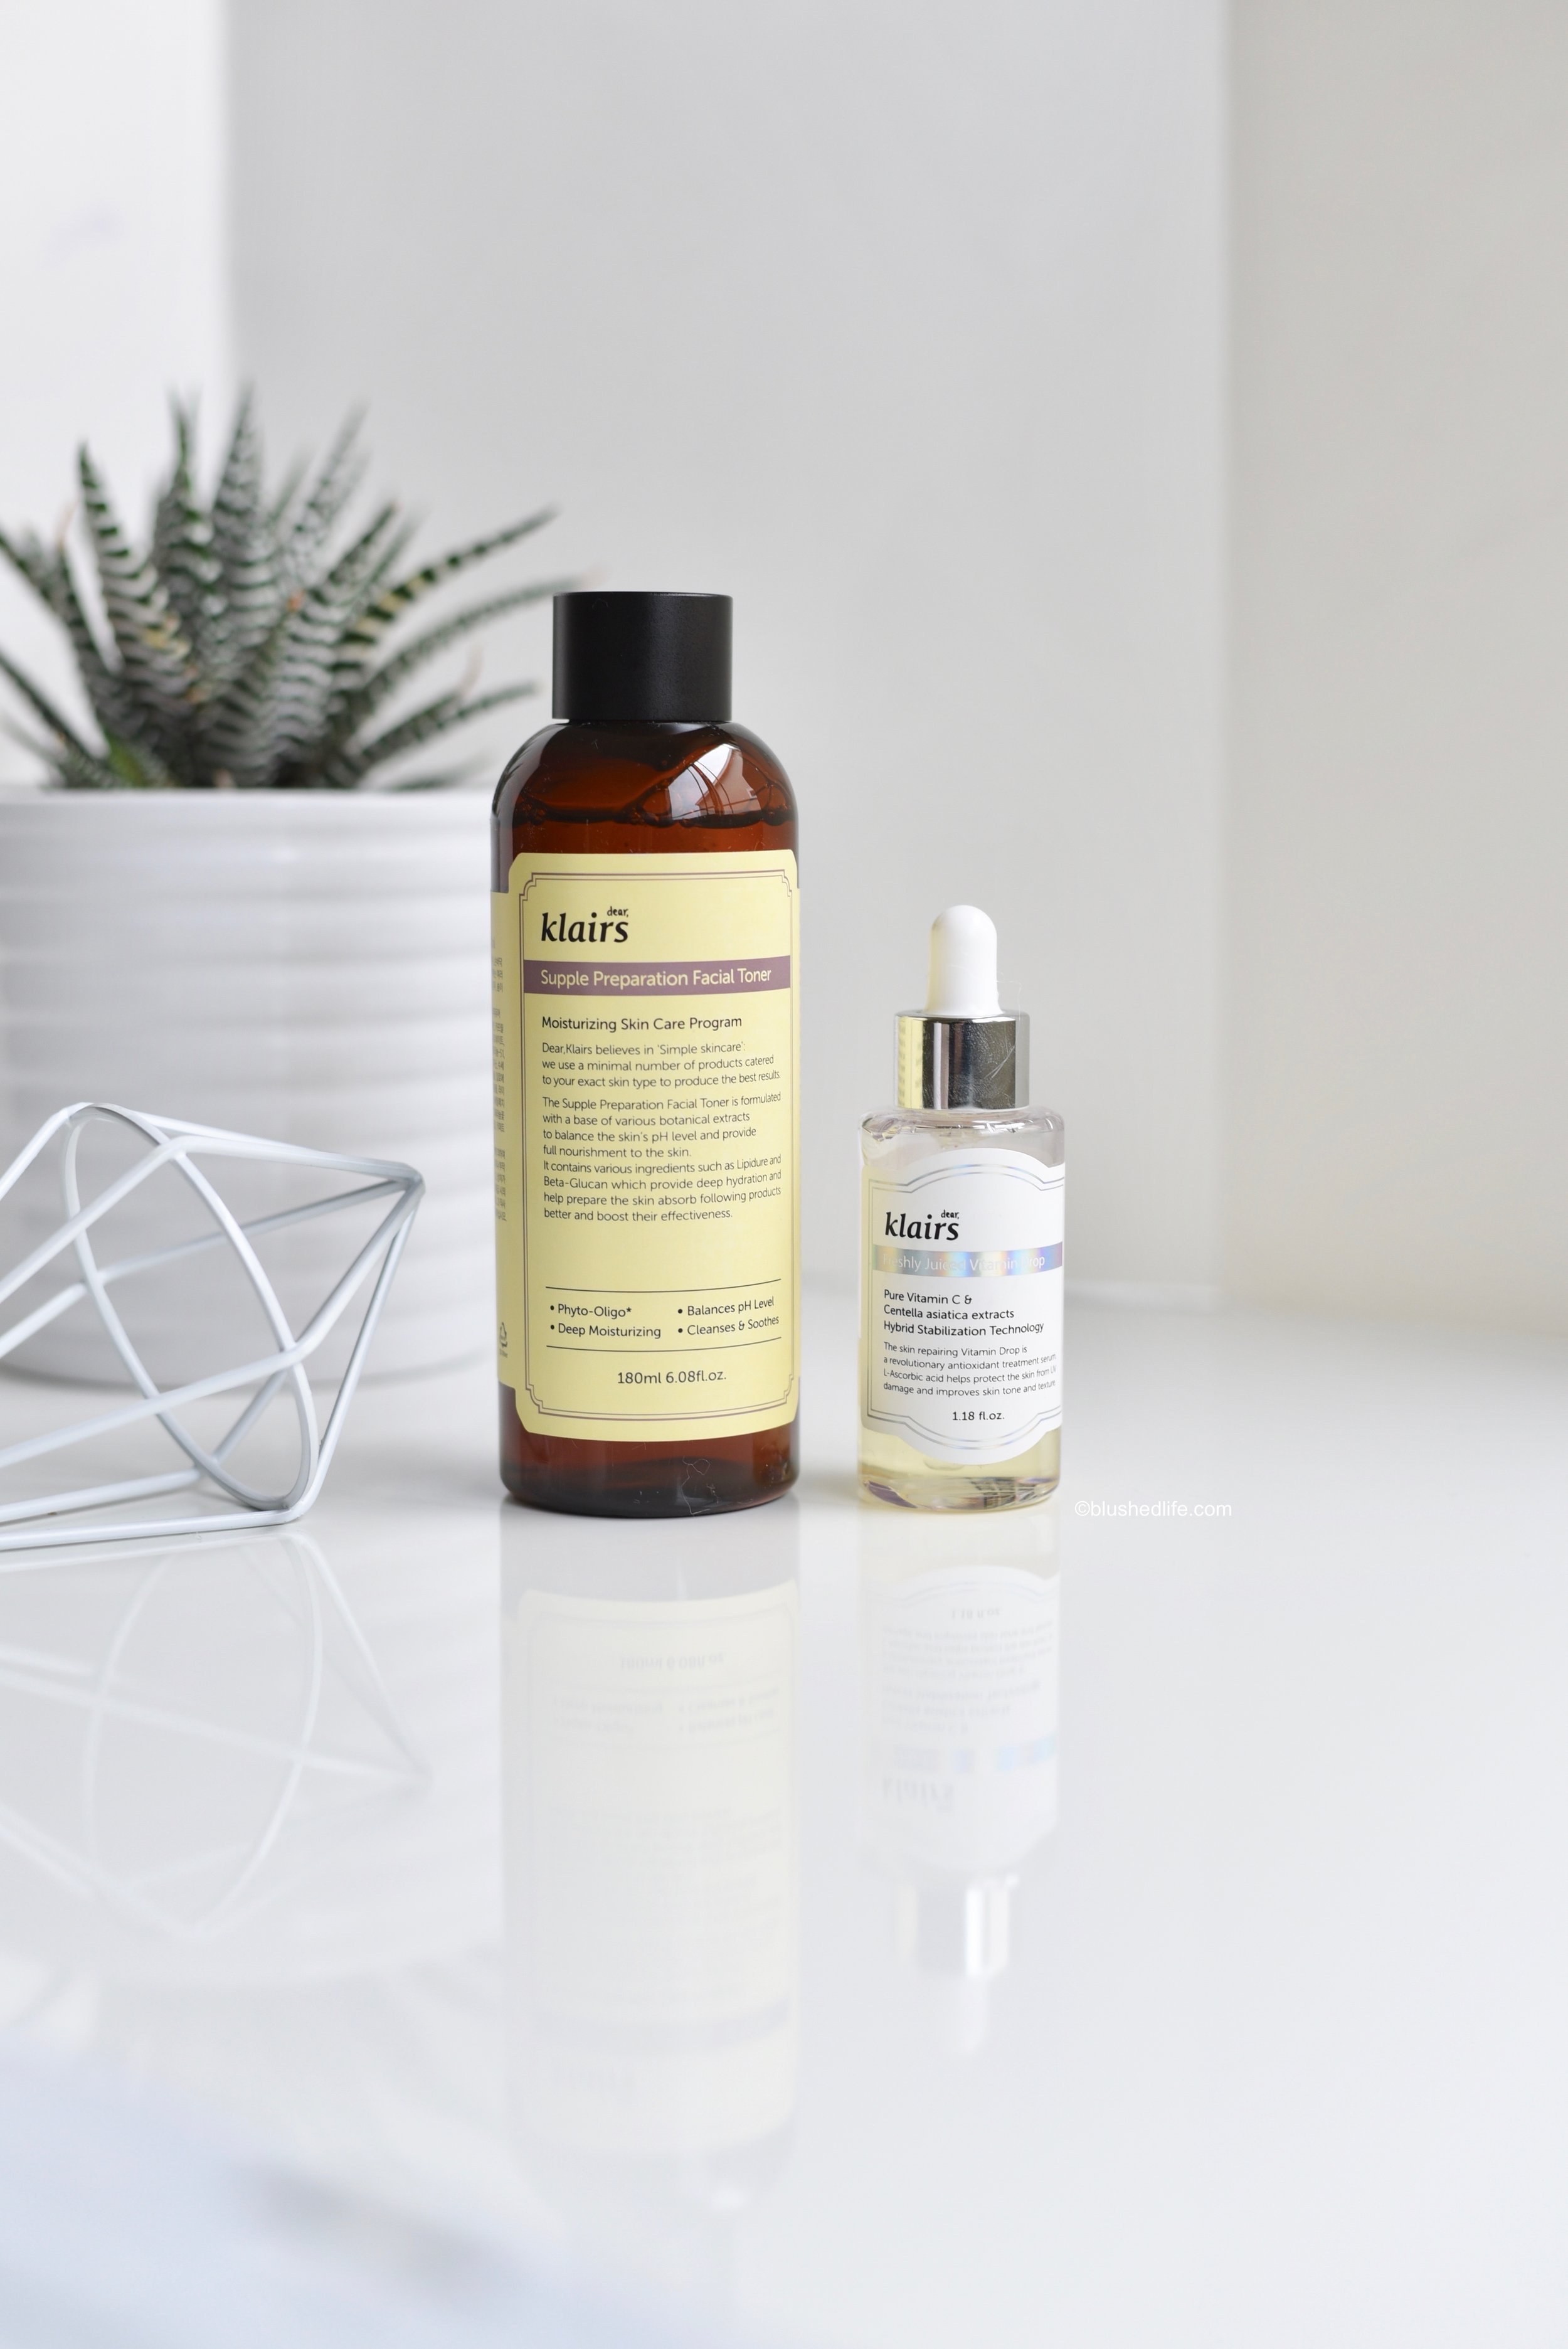 Shop toner:  http://amzn.to/2FbAxNQ  or  here   Shop vit c:  here